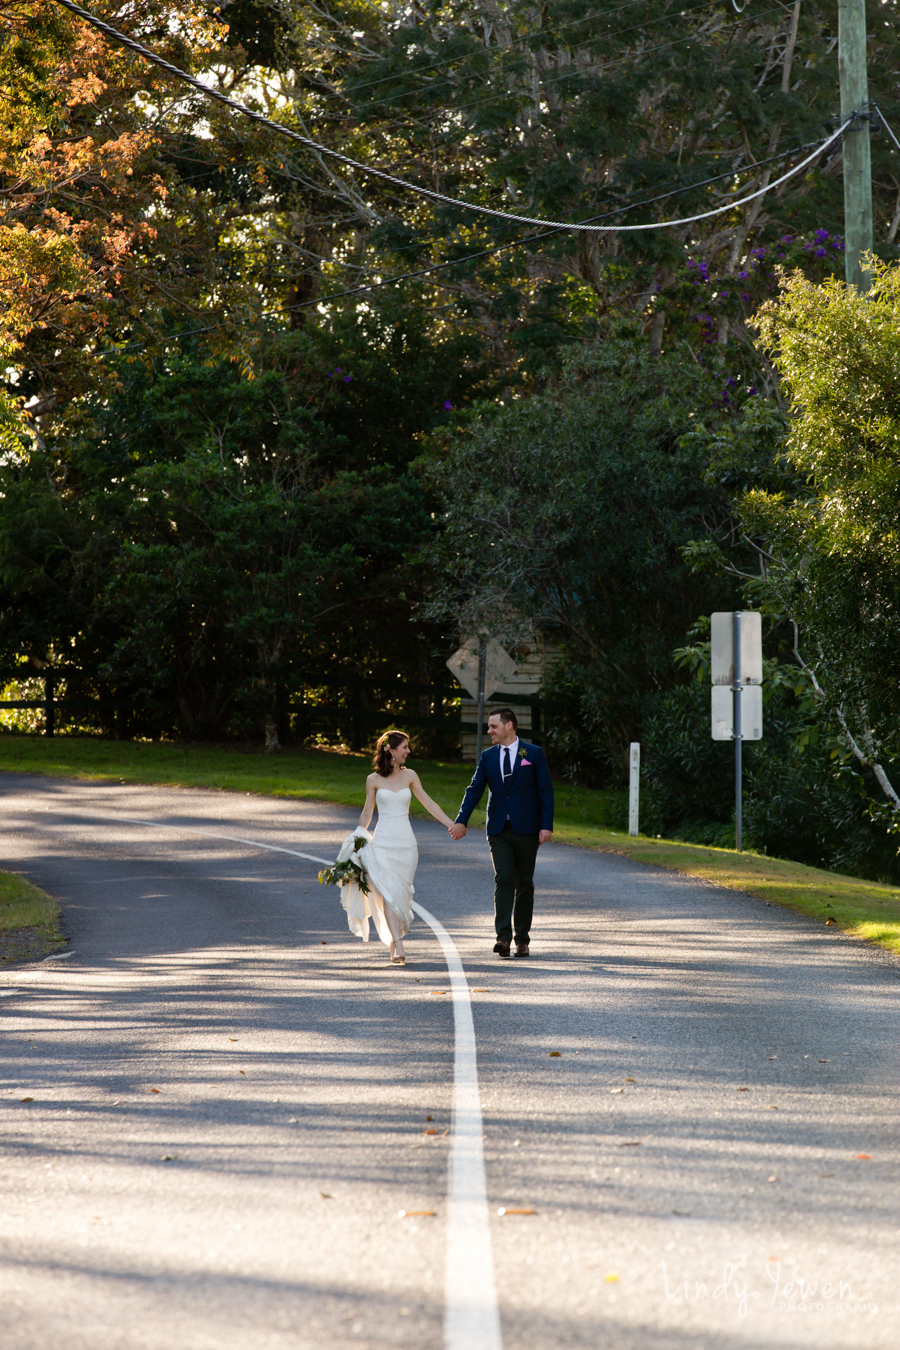 Montville-wedding-photographer-Lauren-Kirby 469.jpg